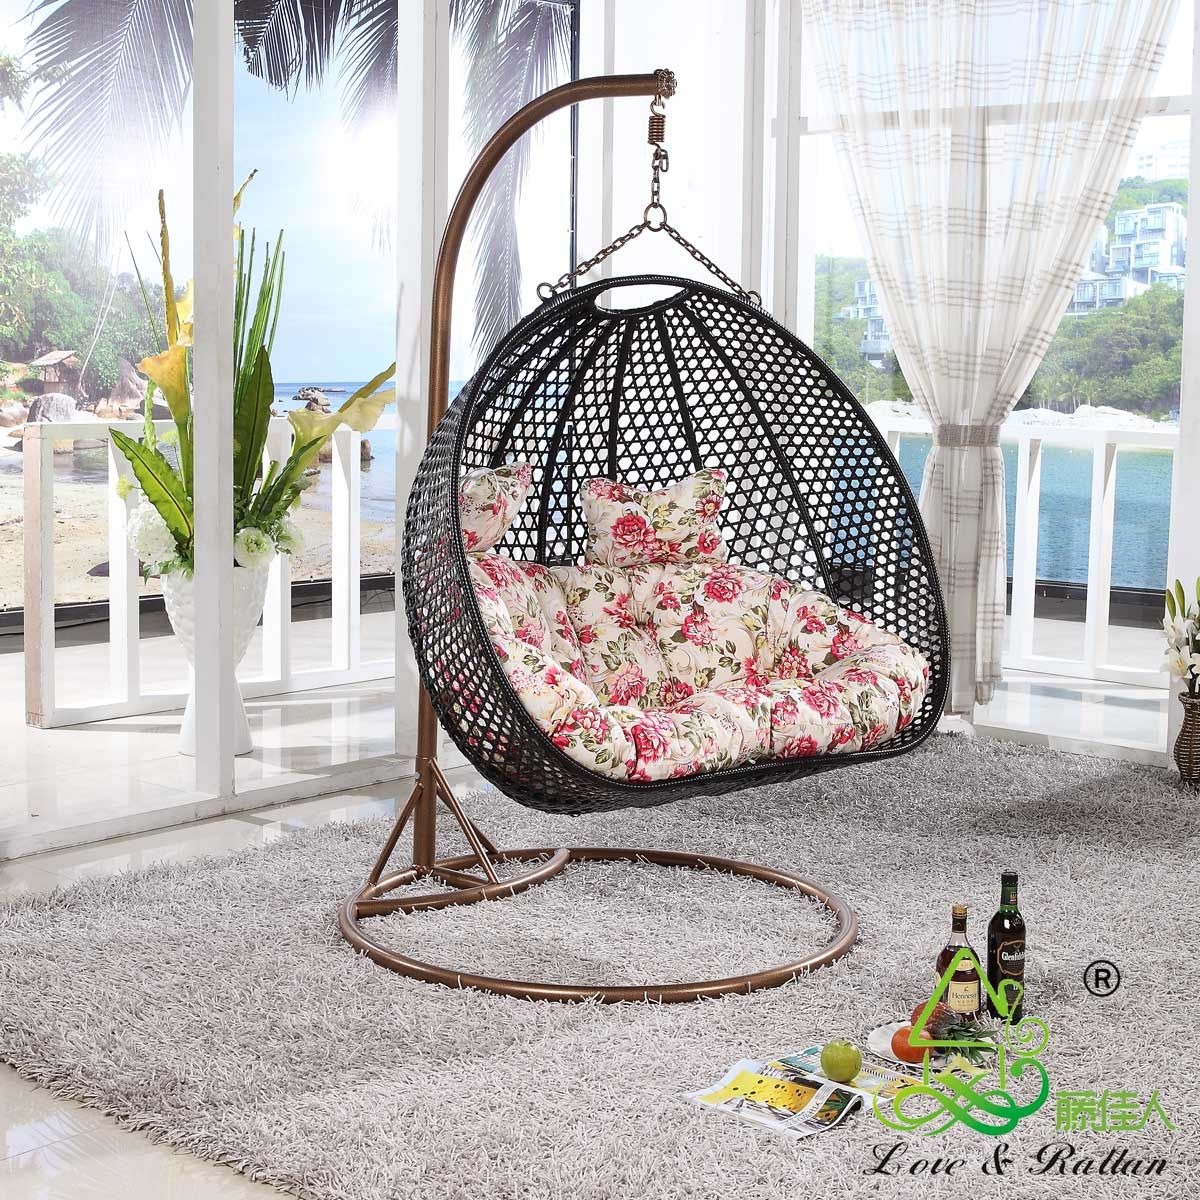 Merveilleux Furniture, Rattan Chair Outdoor Swing Hanging Basket Double Hammock Indoor  And Outdoor: Outdoor Hanging Chair Design